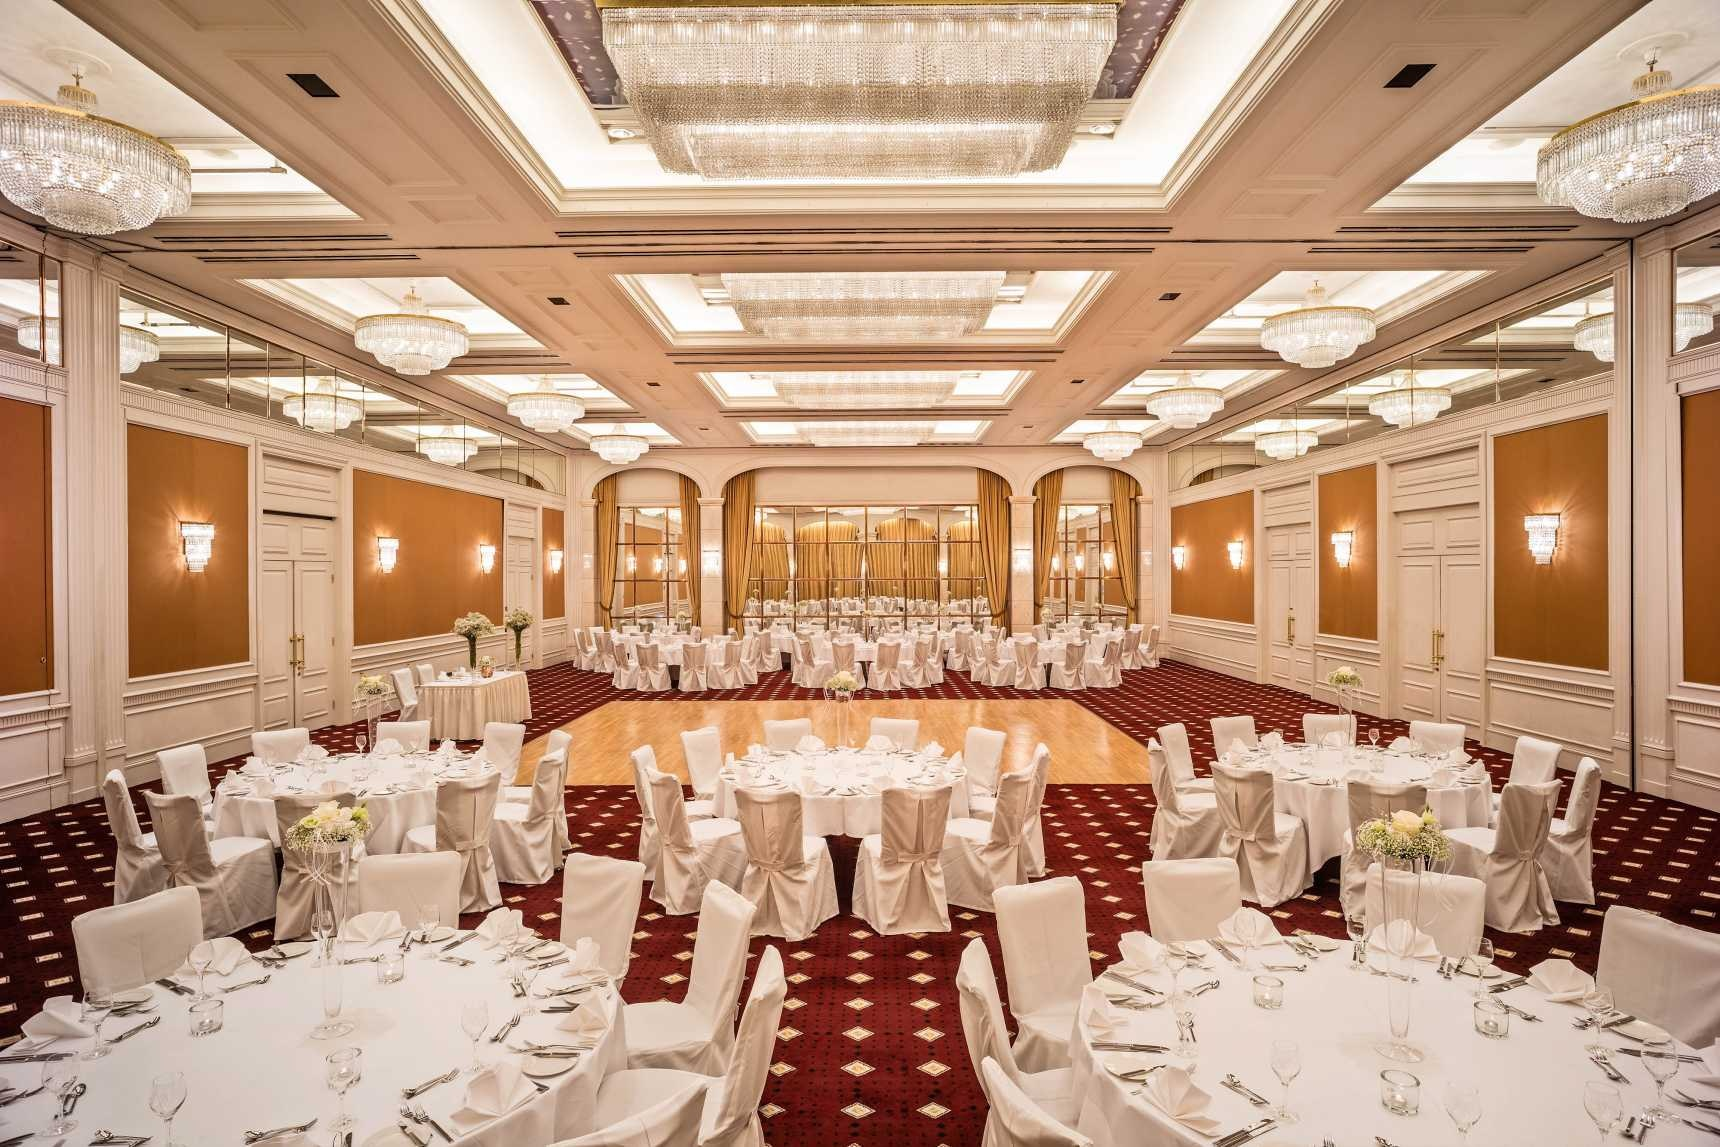 Large ballroom with round tables in white linen, dance floor in the middle